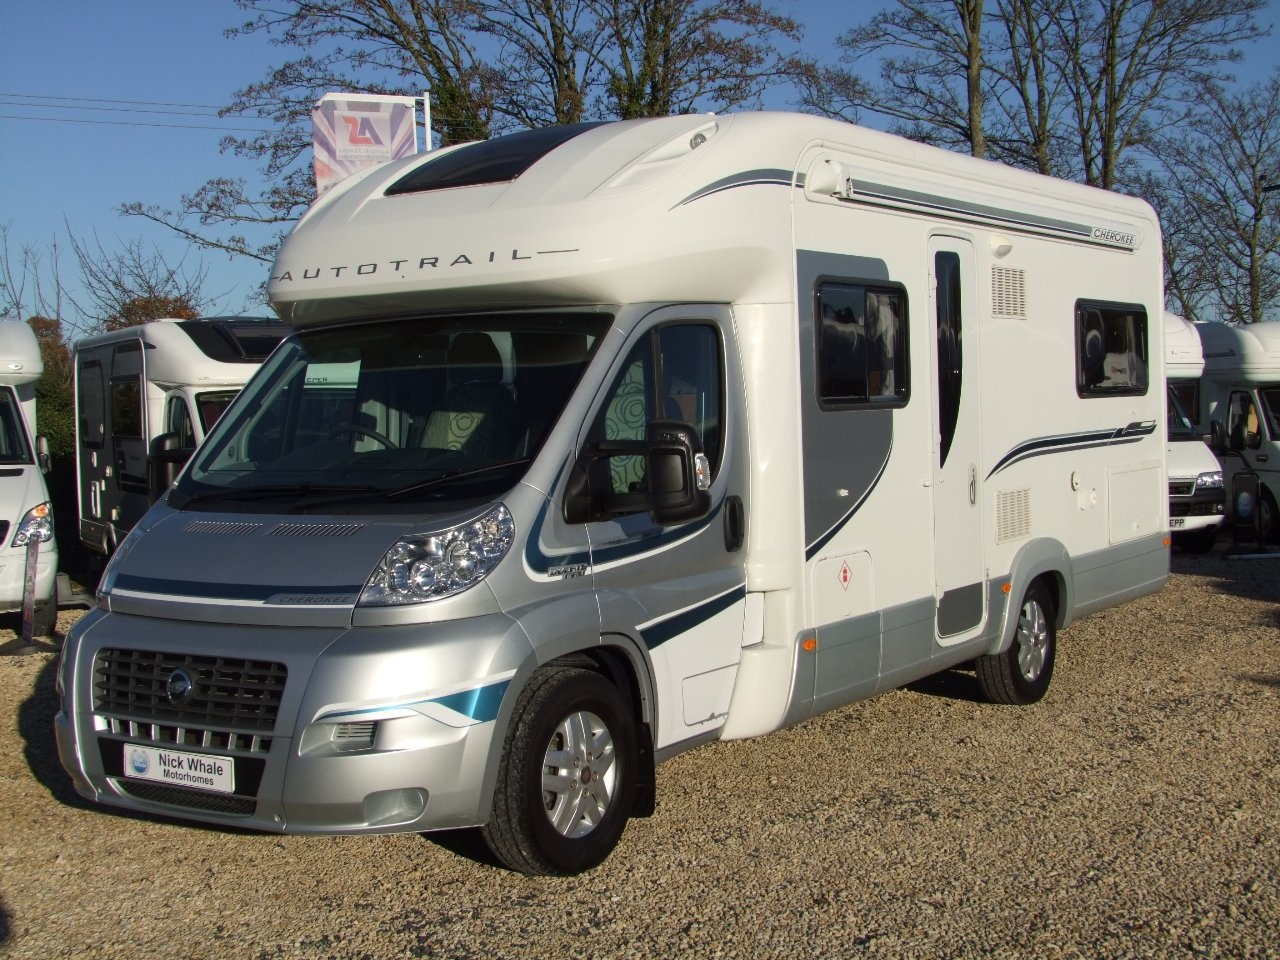 Auto-Trail Cherokee SE Ultra Low line